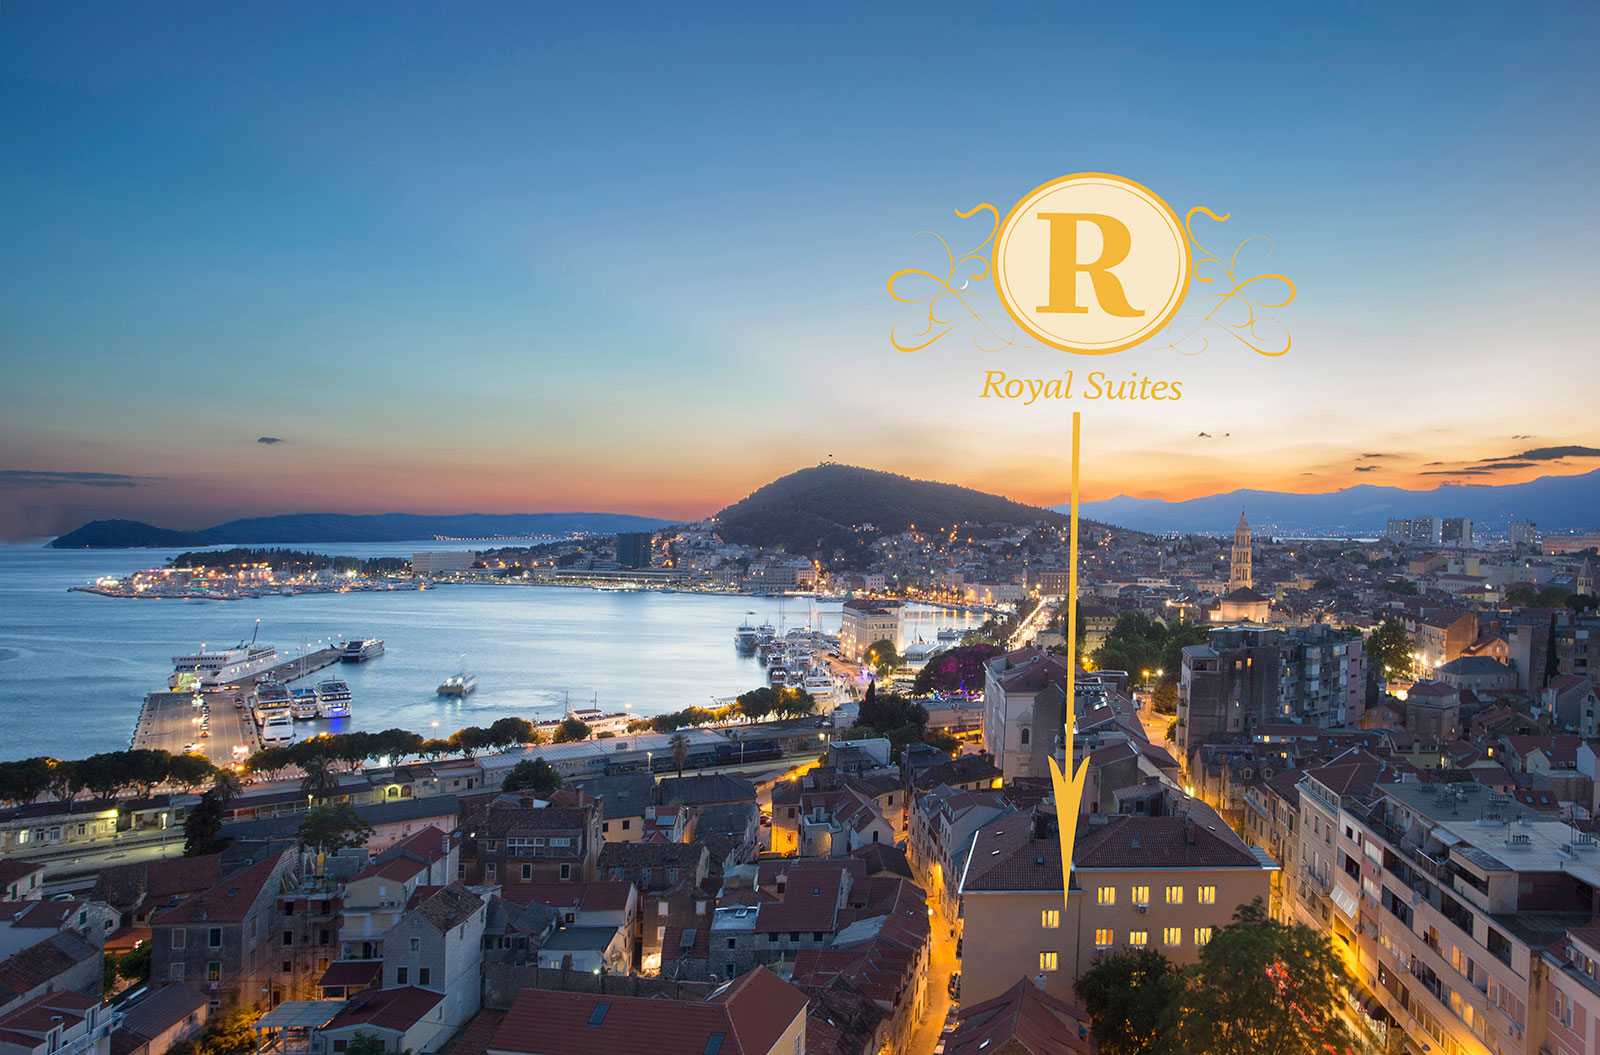 Perfect location for accommodation Split Croatia-Royal suites Split